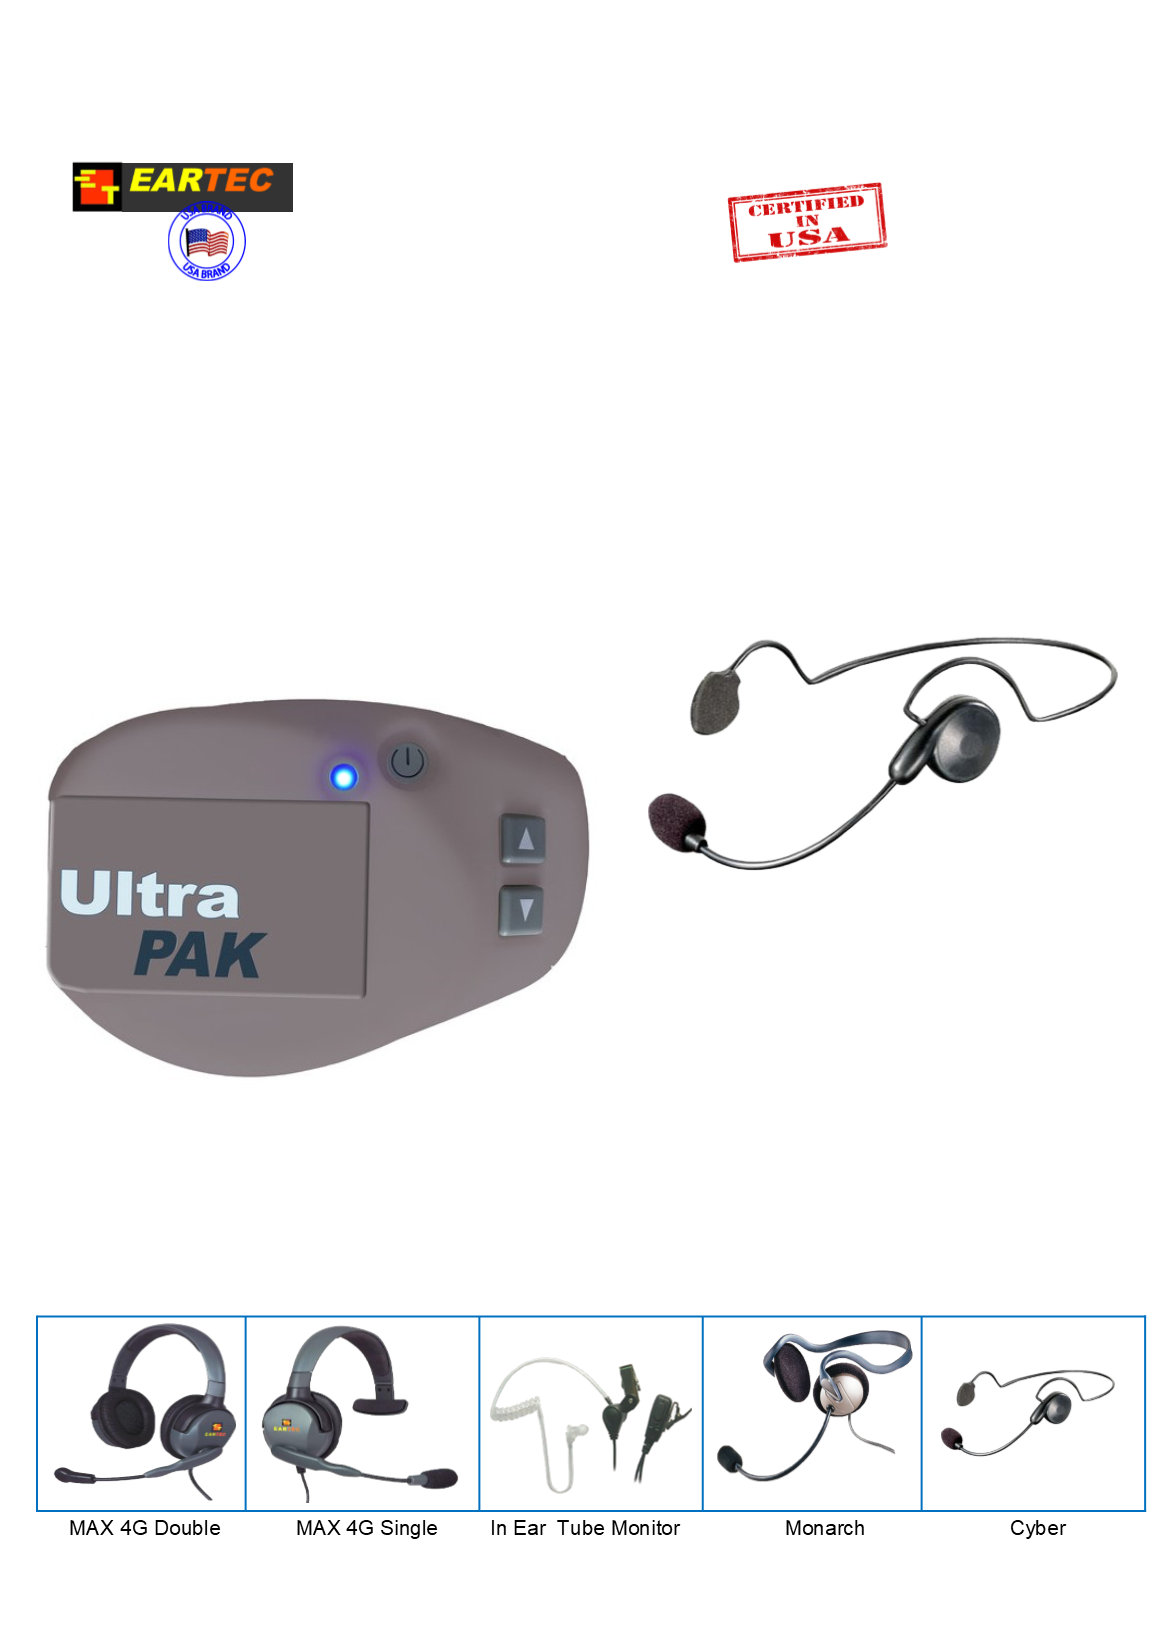 Eartec UPCYB1 UltraPAK Intercom System with Cyber Headset Intercom Systems Eartec